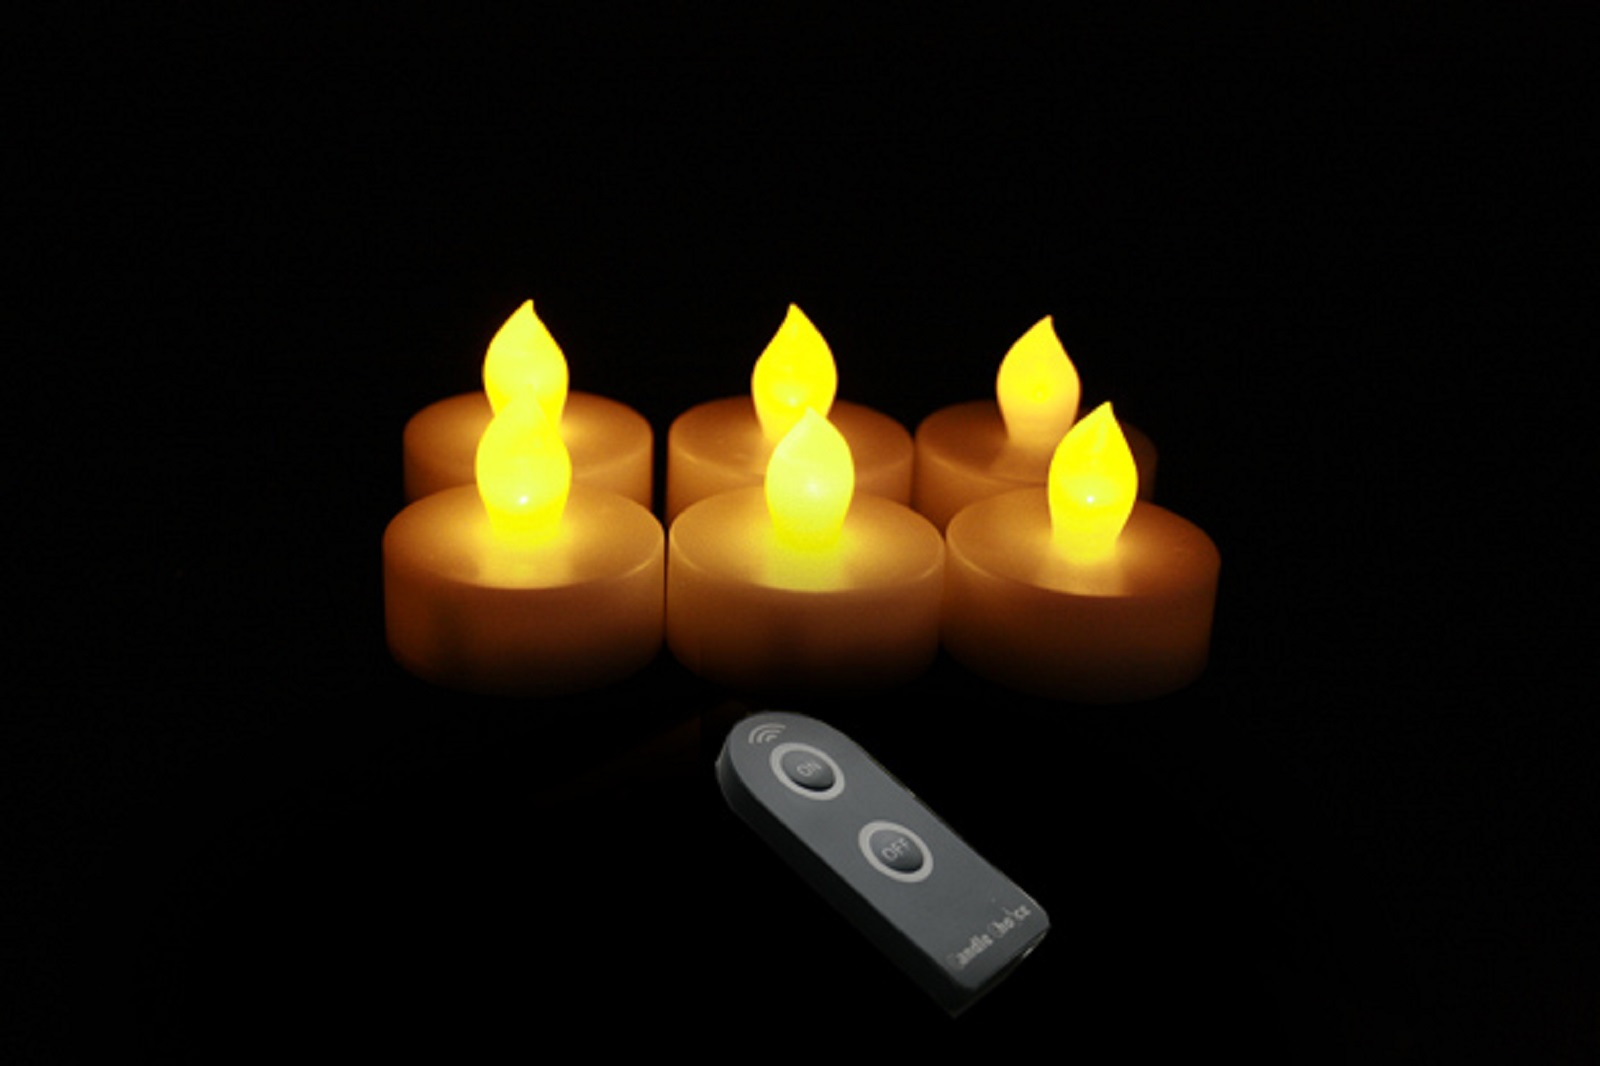 Set of 6 Remote Controlled Flameless LED Tealight Candles - White